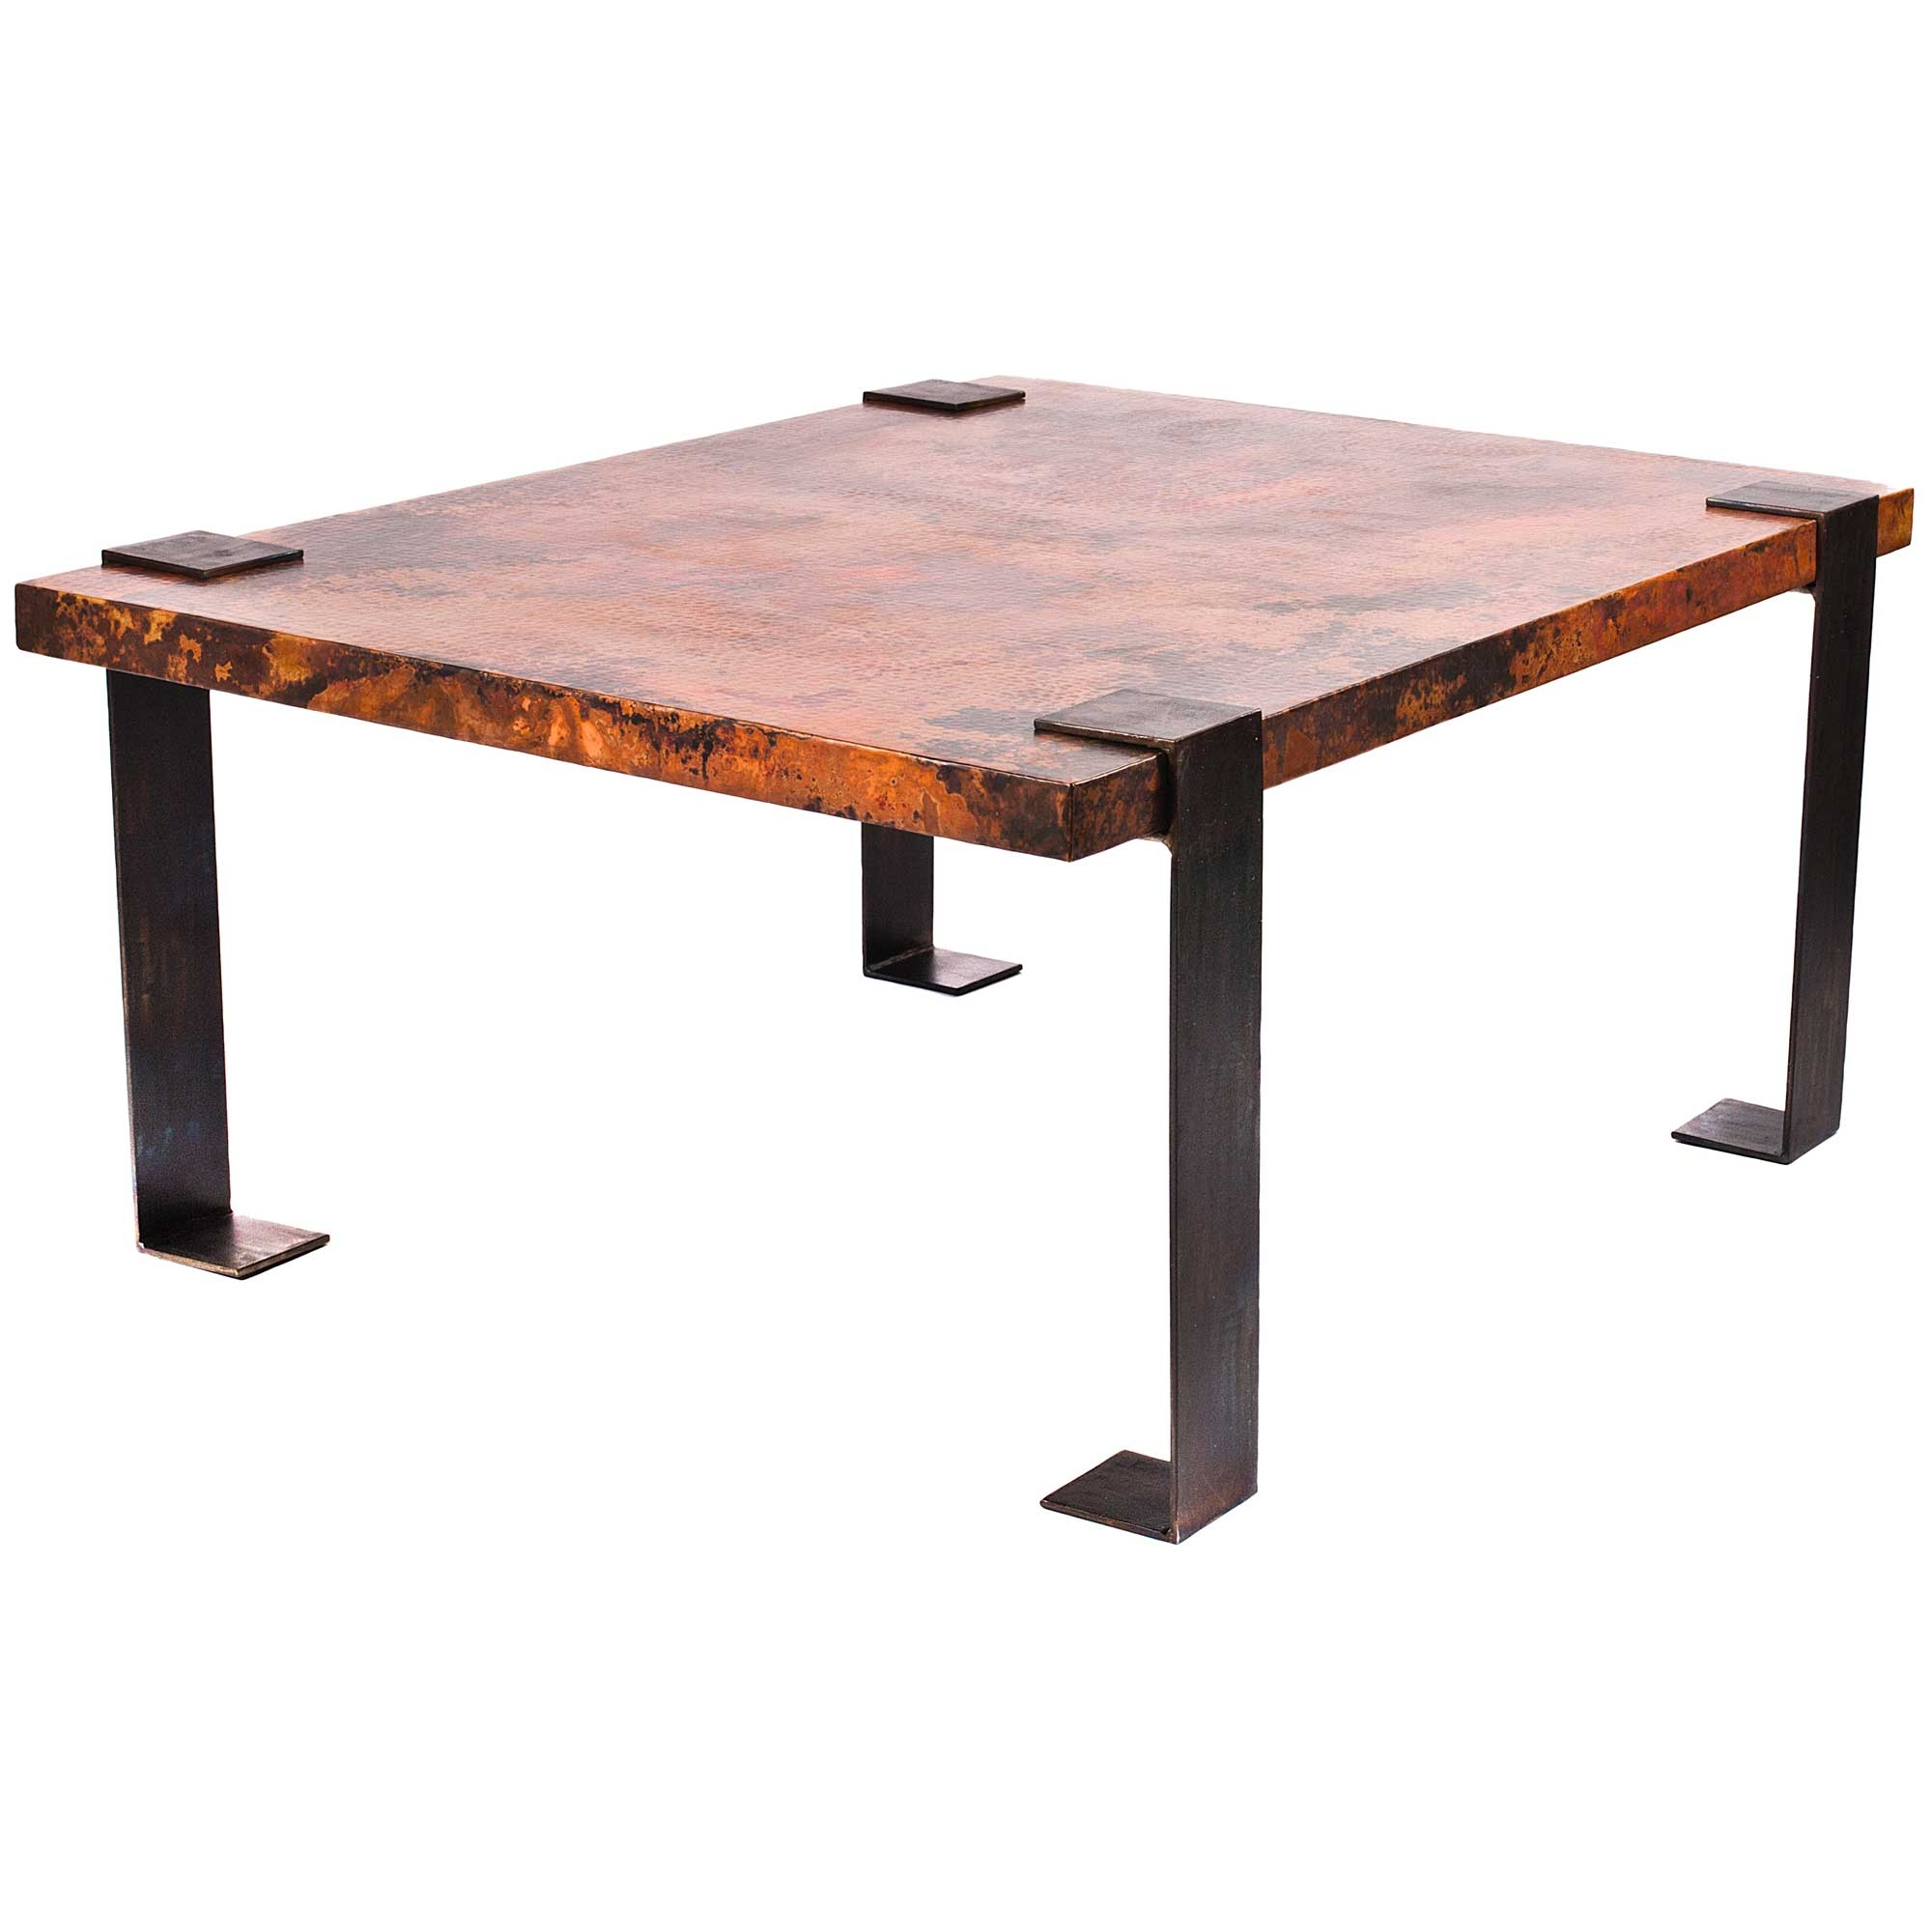 Pictured Here Is The Hudson Small Cocktail Table With Wrought Iron Base And Rectangle Hammered